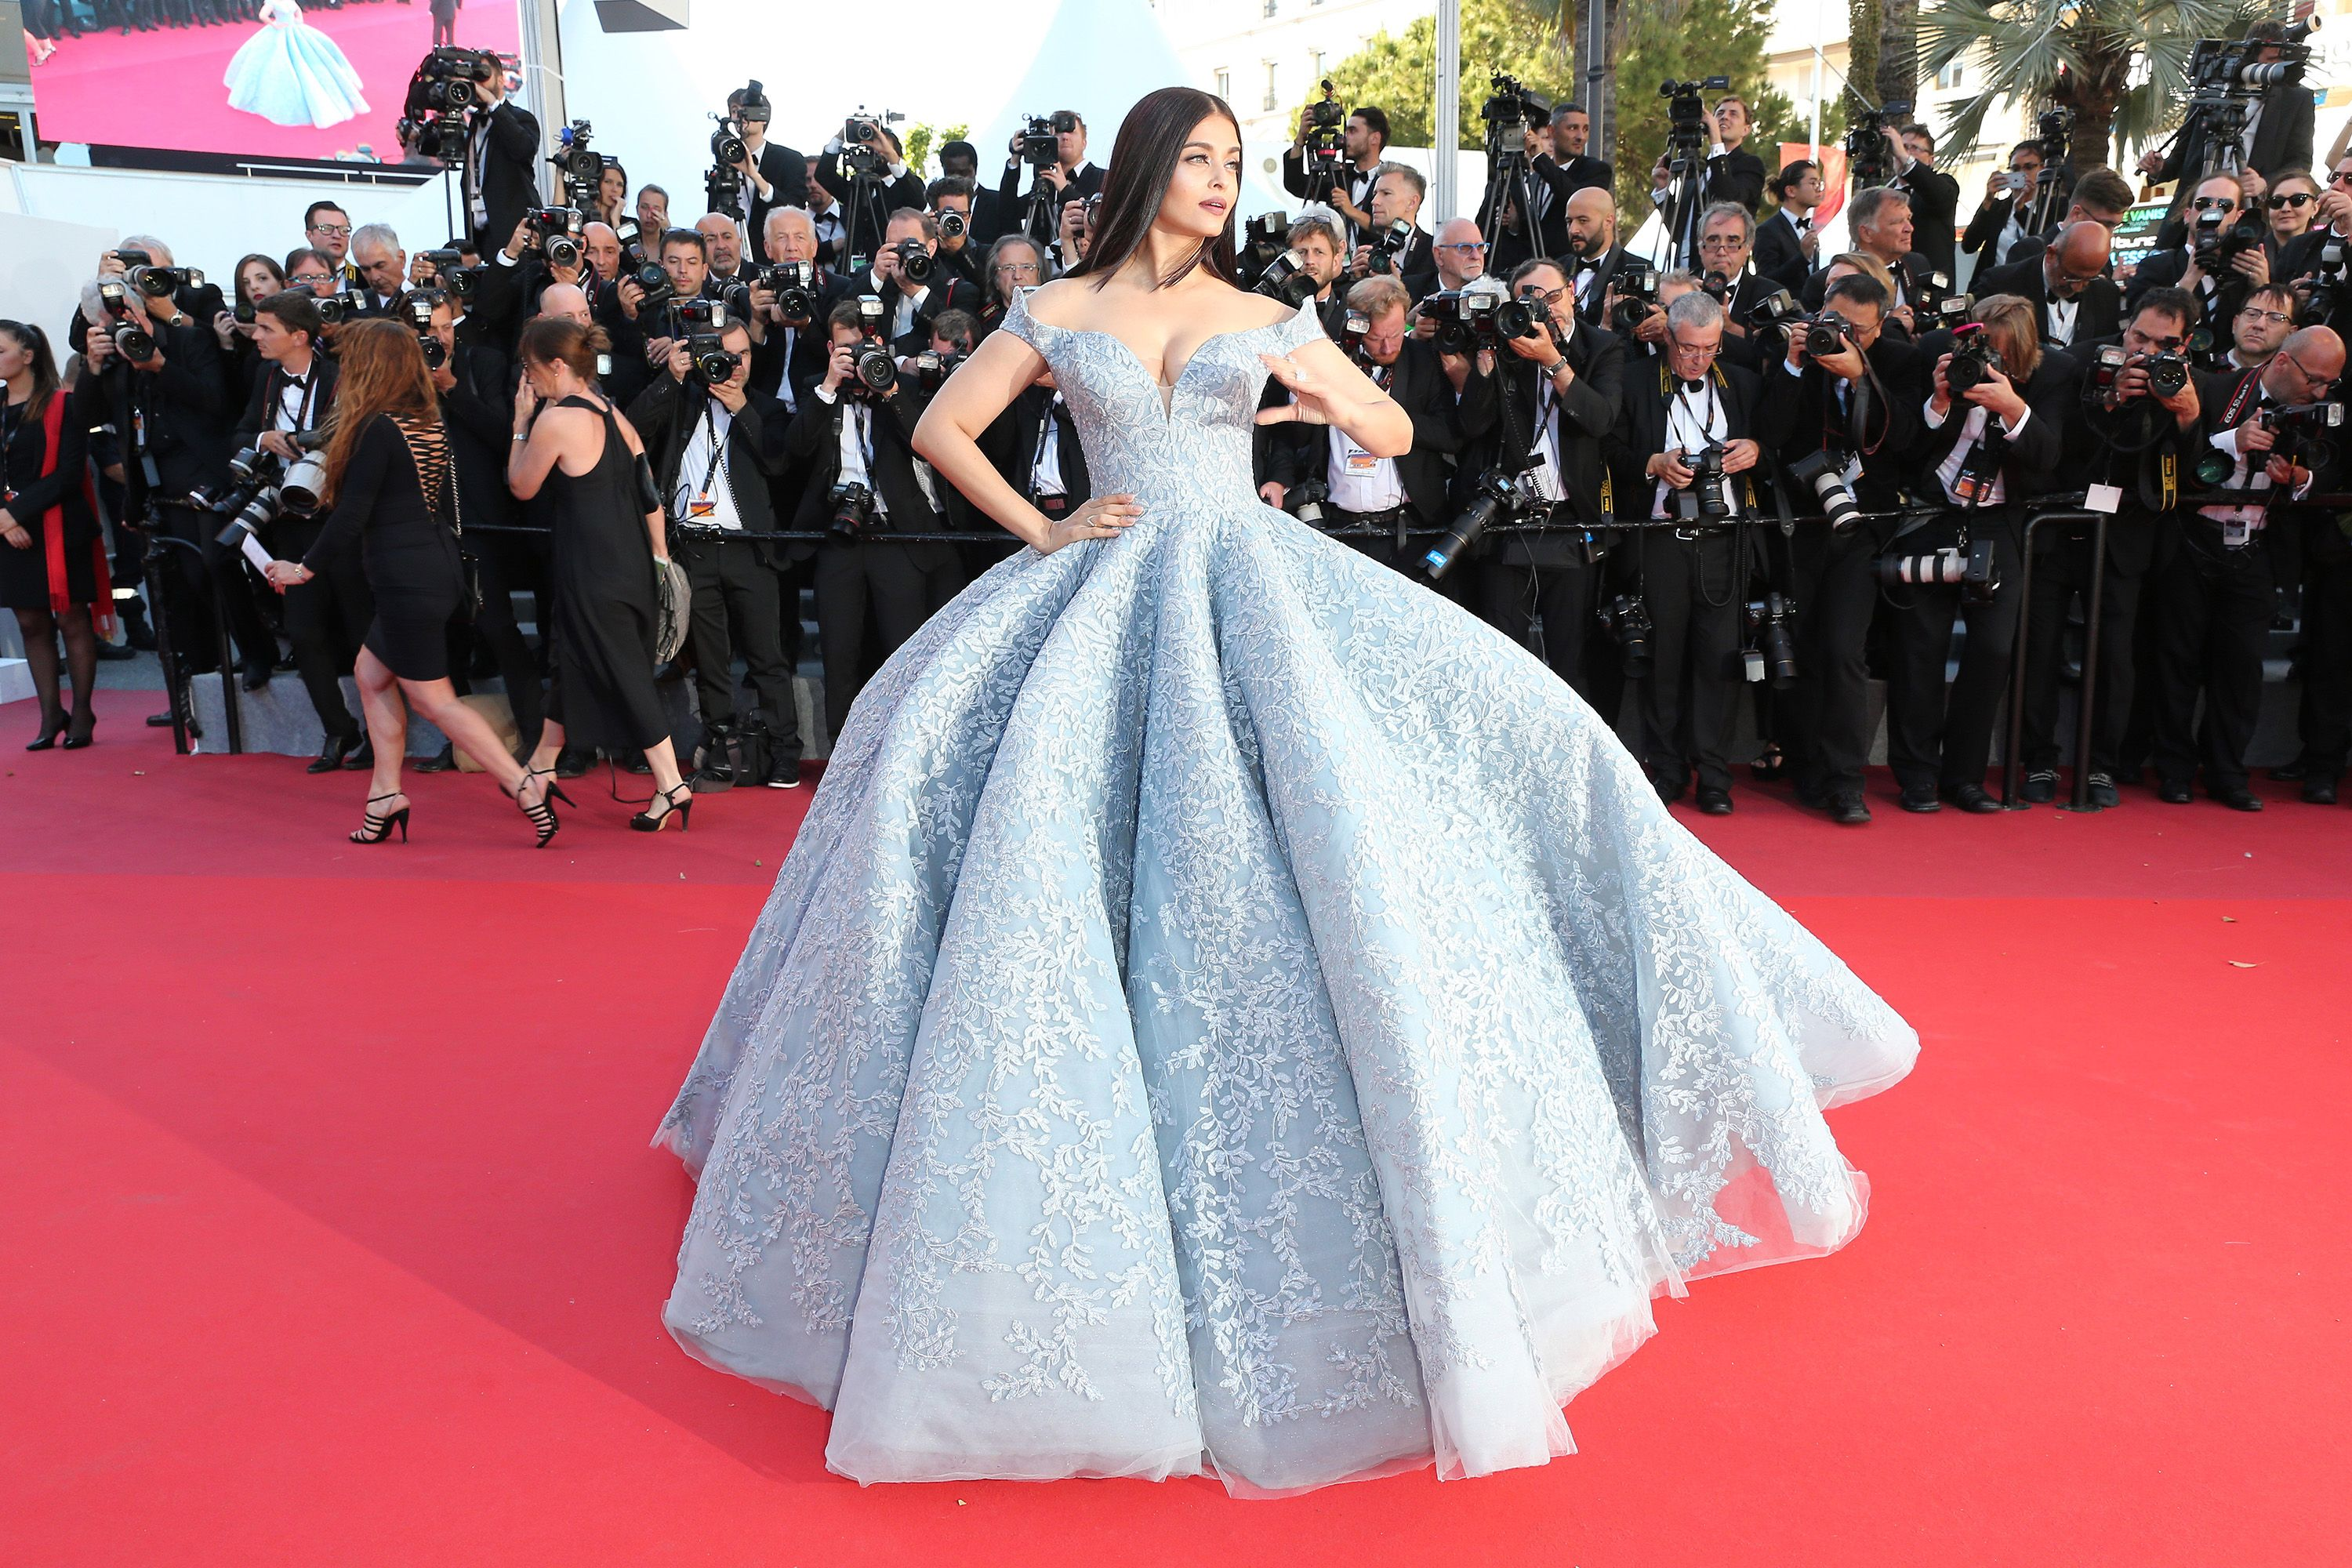 Aishwarya Rais Butterfly Dress At Cannes Film Festival Took 3000